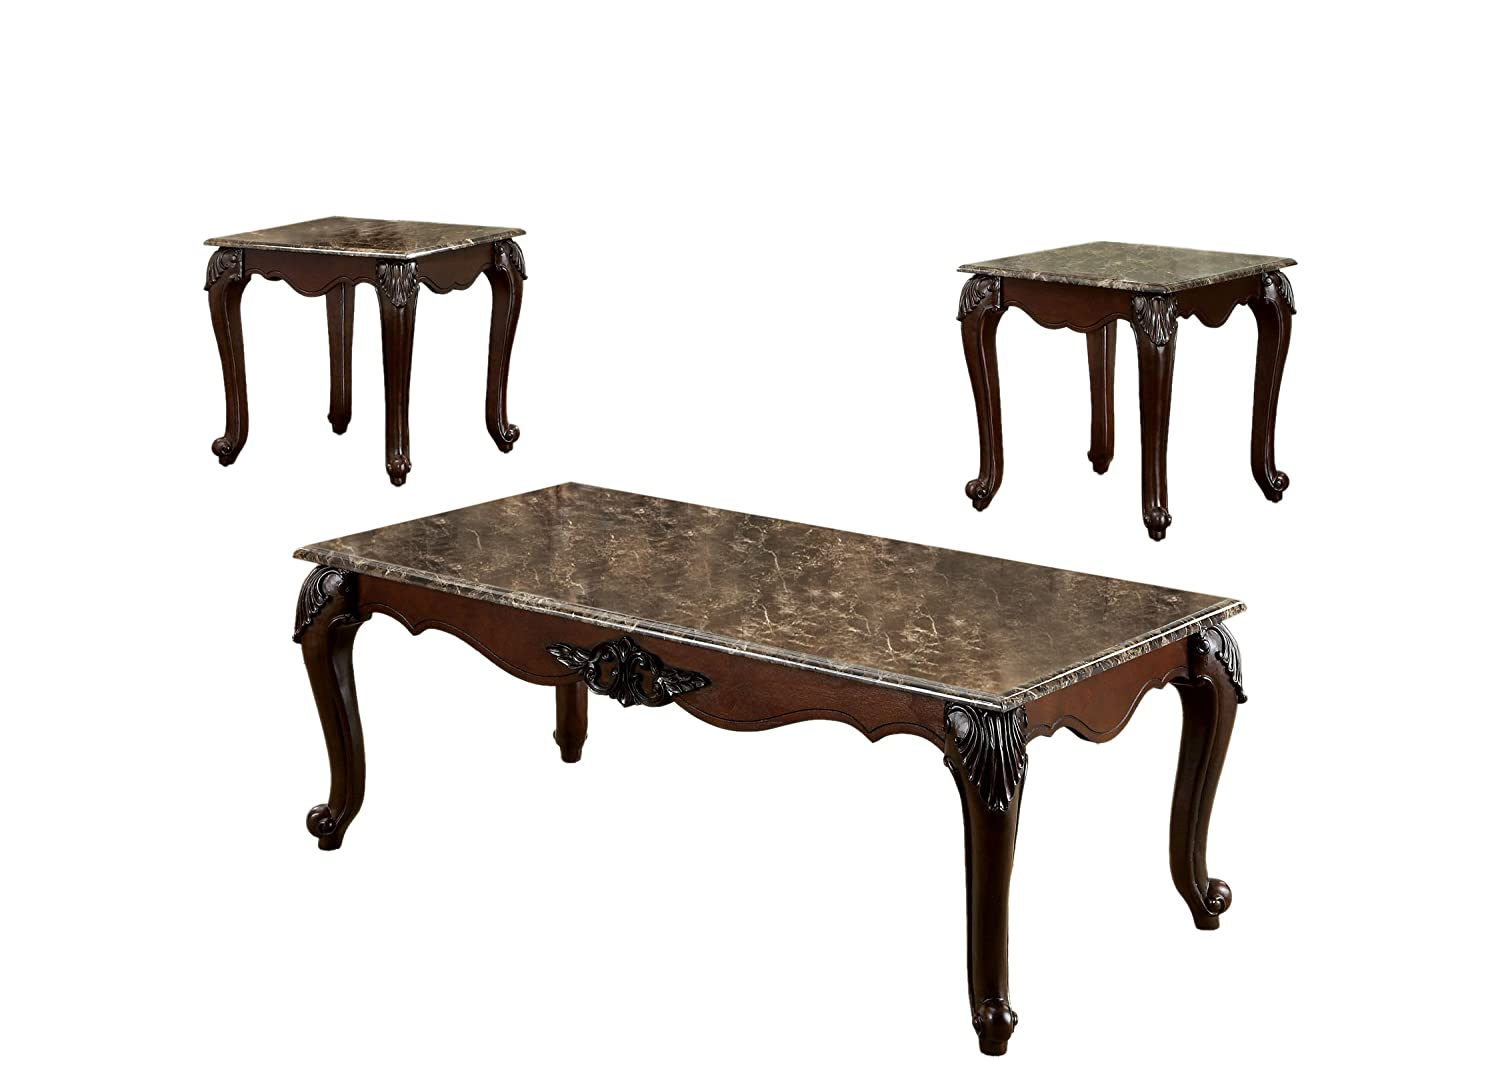 Amazon.com: Furniture Of America Margaux 3 Piece French Style Accent Table  Set With Faux Marble Tops, Dark Cherry Finish: Kitchen U0026 Dining